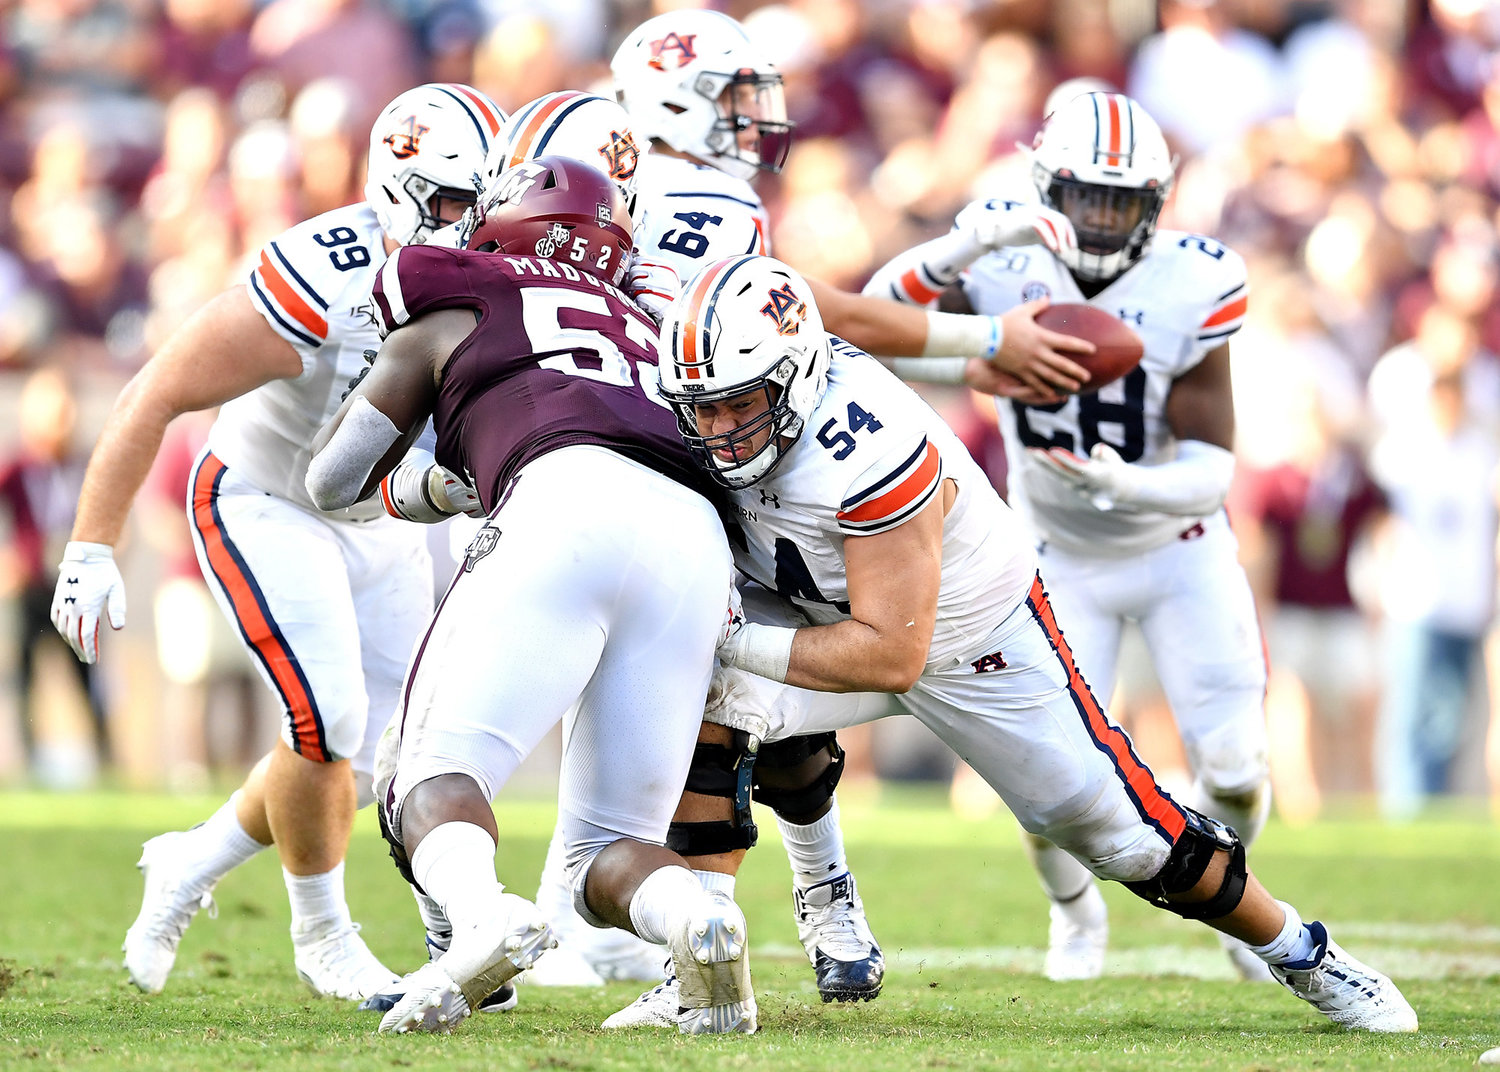 Auburn Tigers offensive lineman Kaleb Kim (54) sets a block for running back JaTarvious Whitlow (28) during the second half of an NCAA football game against the Texas A&M Aggies Saturday, Sept. 21, 2019, at Kyle Field in College Station Texas. Auburn wins 28-20.